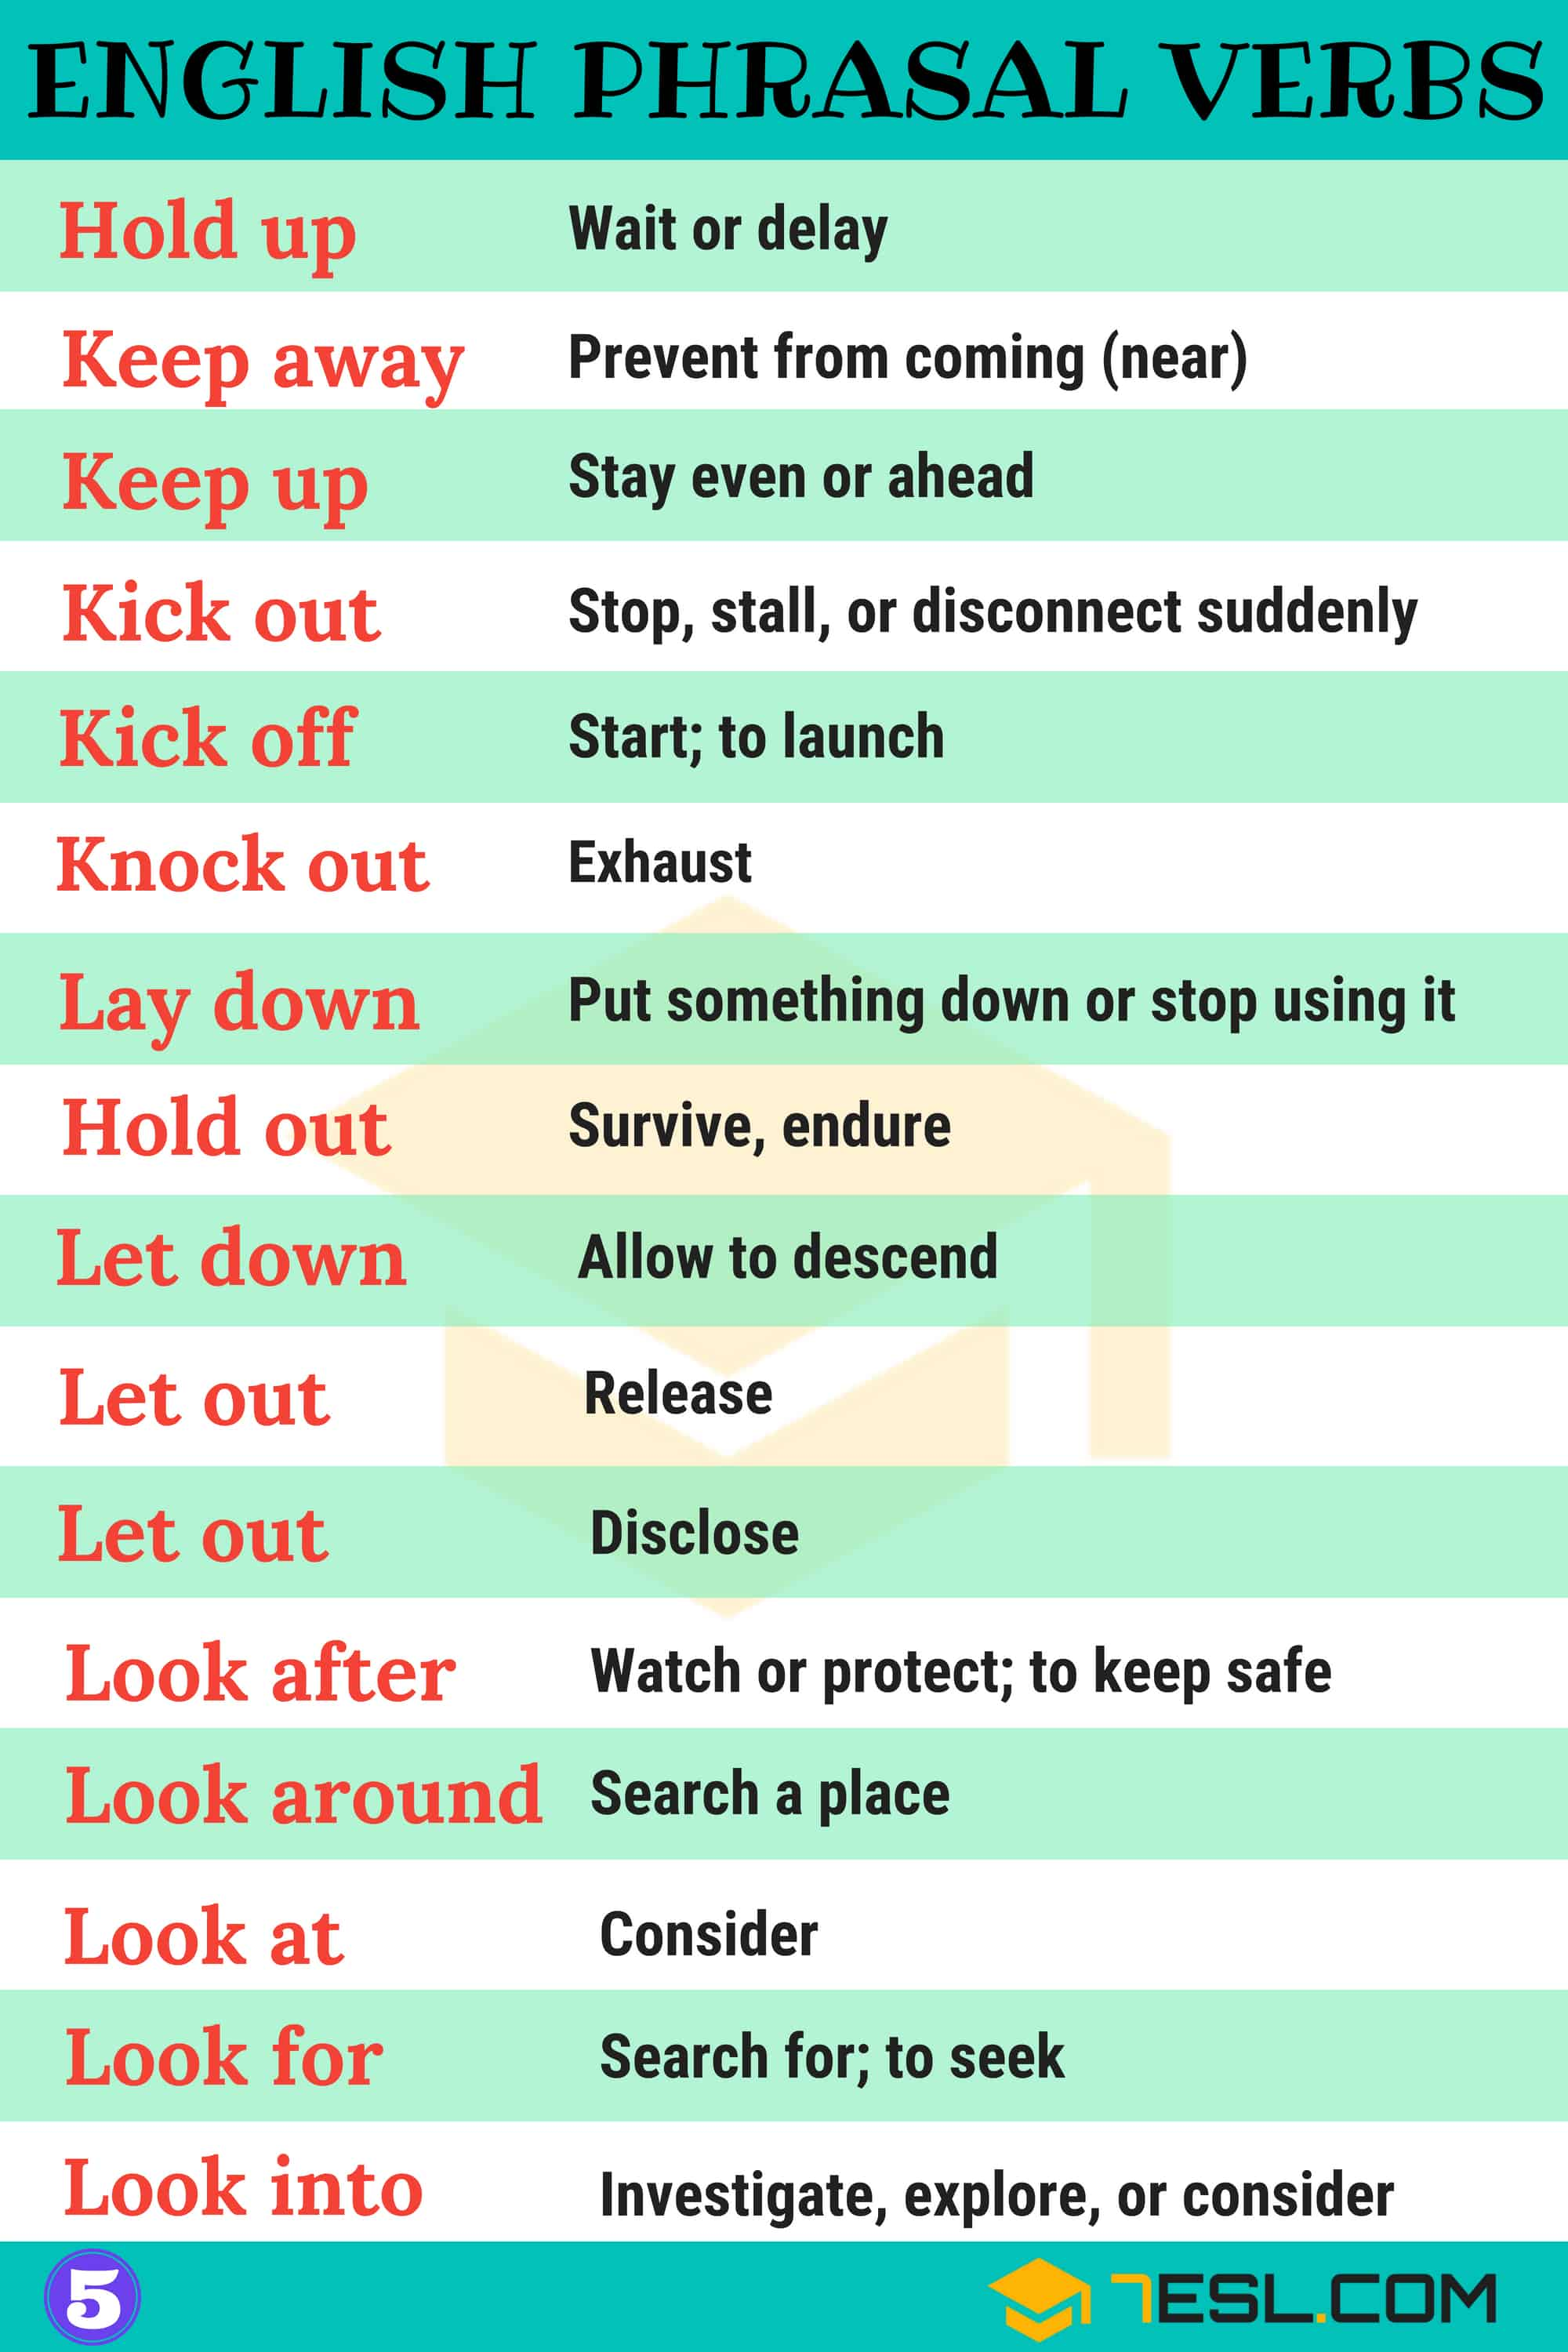 Commonly Used English Phrasal Verbs List | Image 5